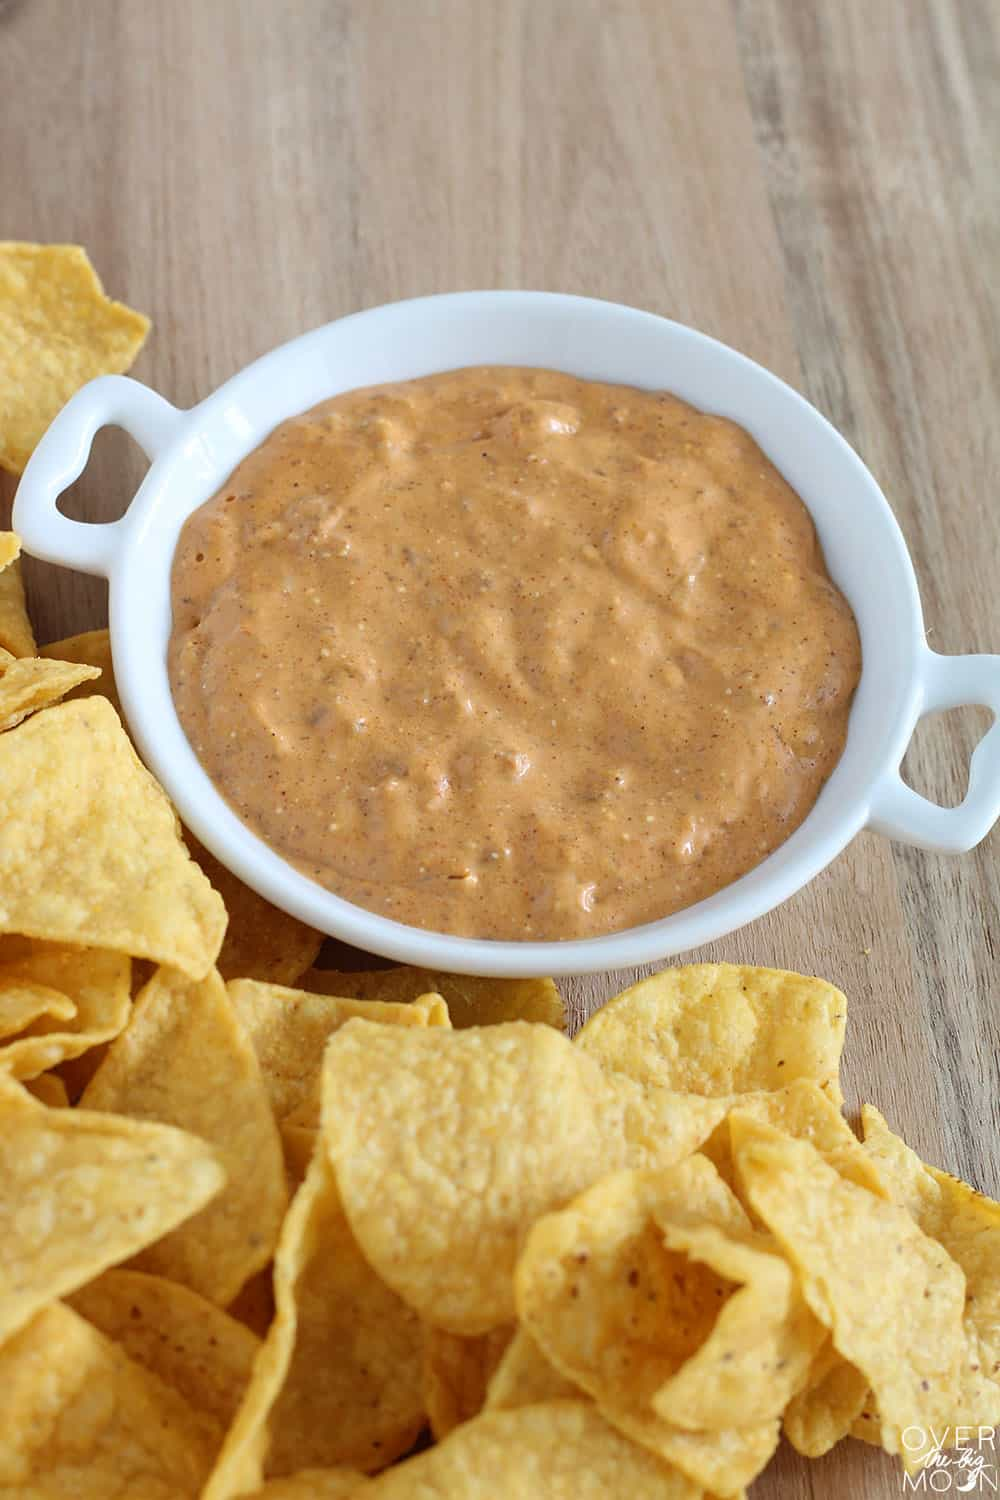 Easy and Quick Chili Queso - this is perfect for potlucks and parties! From overthebigmoon.com!